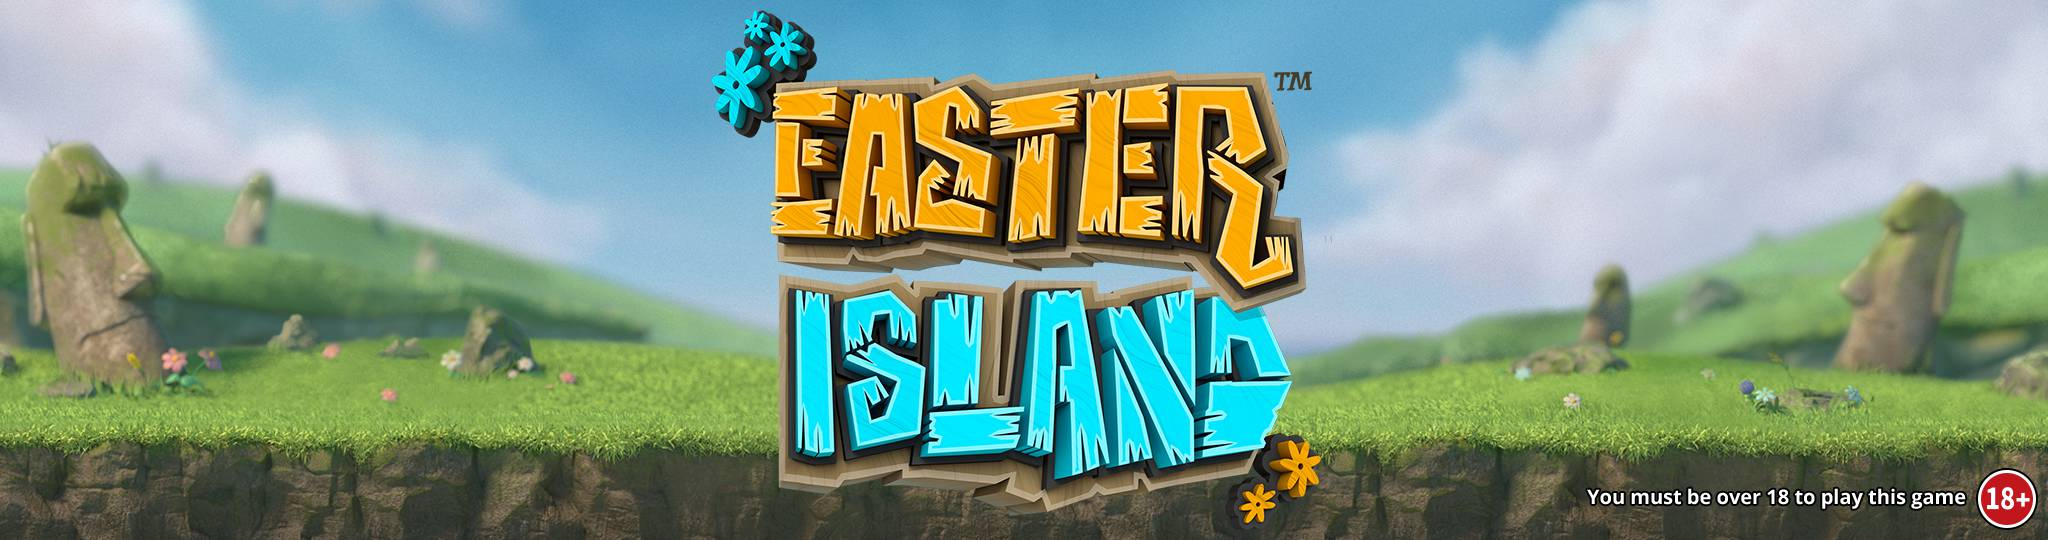 easter island slots game logo